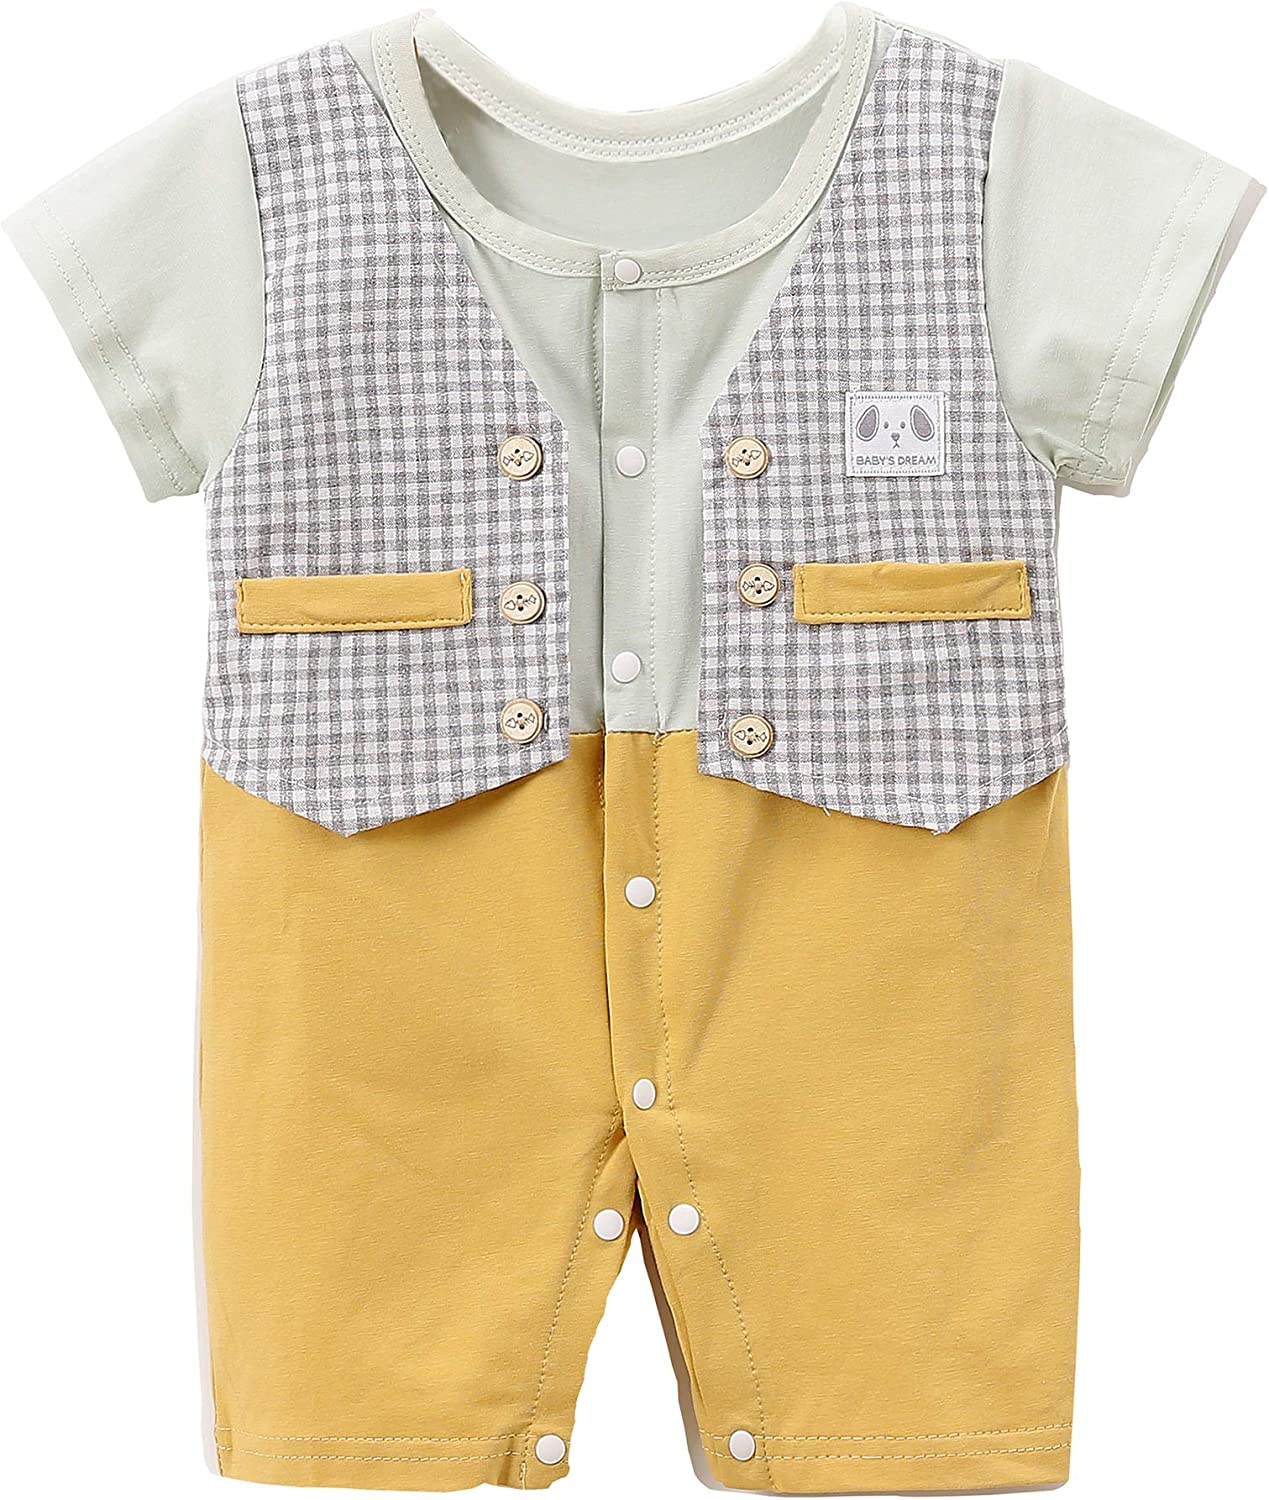 Tulsa Mall OFFicial store Beal shopping Baby T-Shirt Gen Boy Suit One-Piece